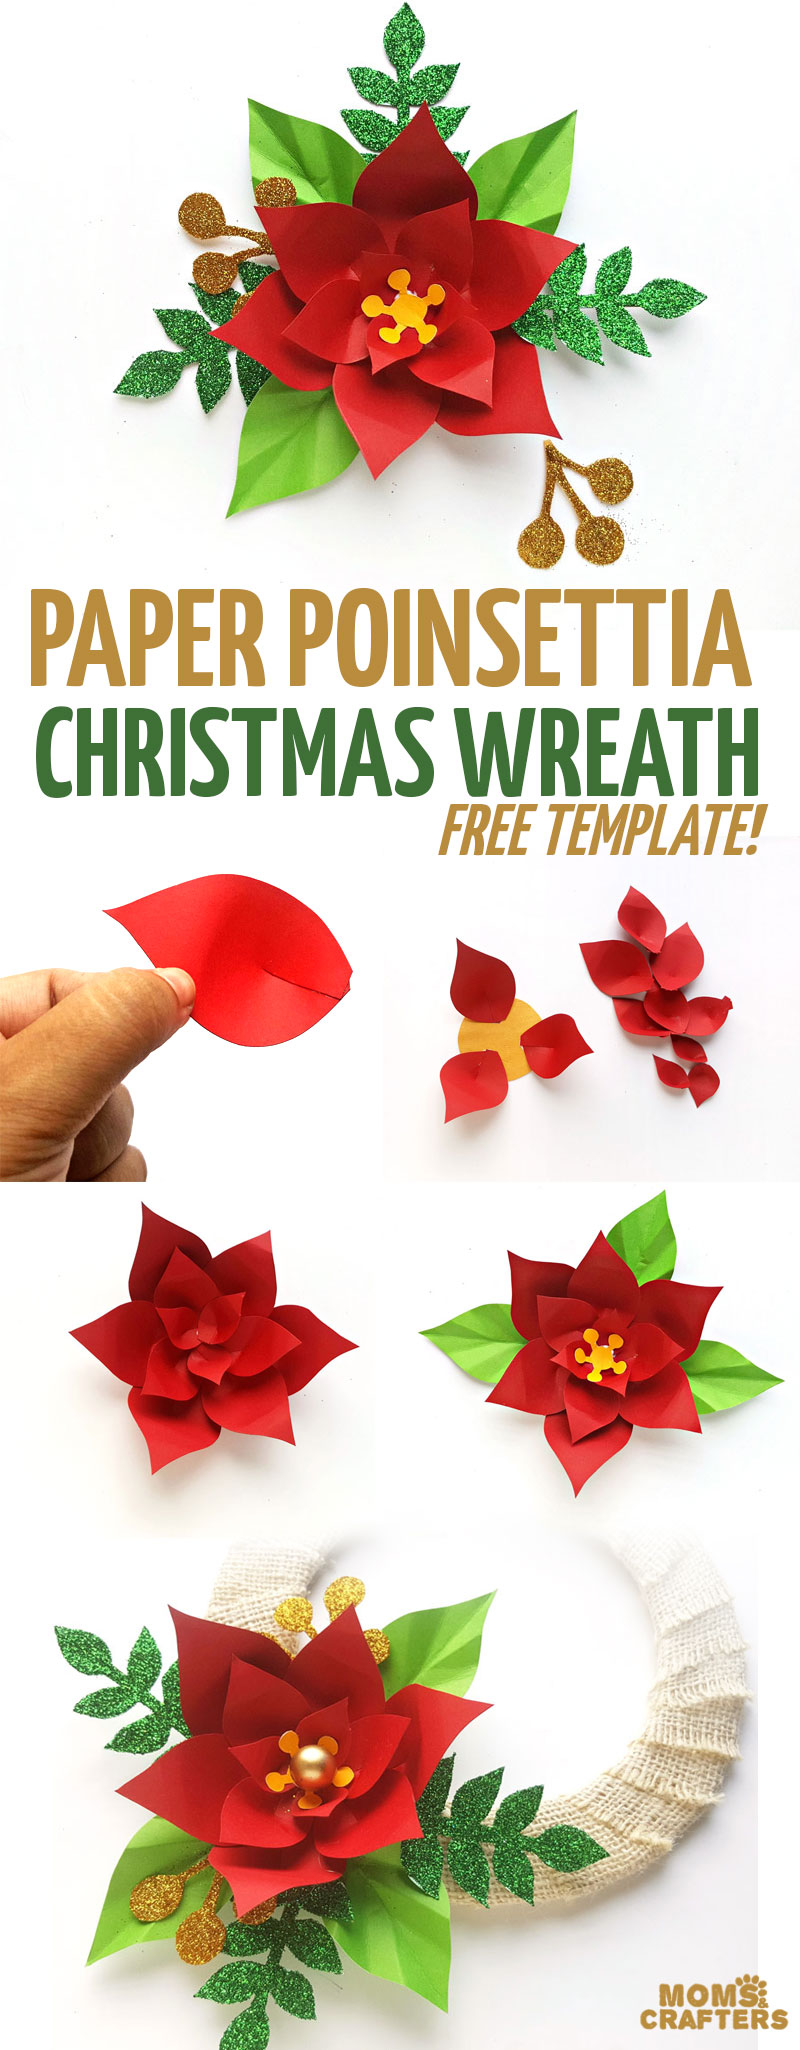 Click to learn how to make a paper flower christmas wreath using this free printable paper poinsettia template! This fun paper flower template makes a fun DIY Christmas craft for teens, tweens, and adults, and a fun paper flower home decor idea #poinsettia #christmaswreath #paperflowers